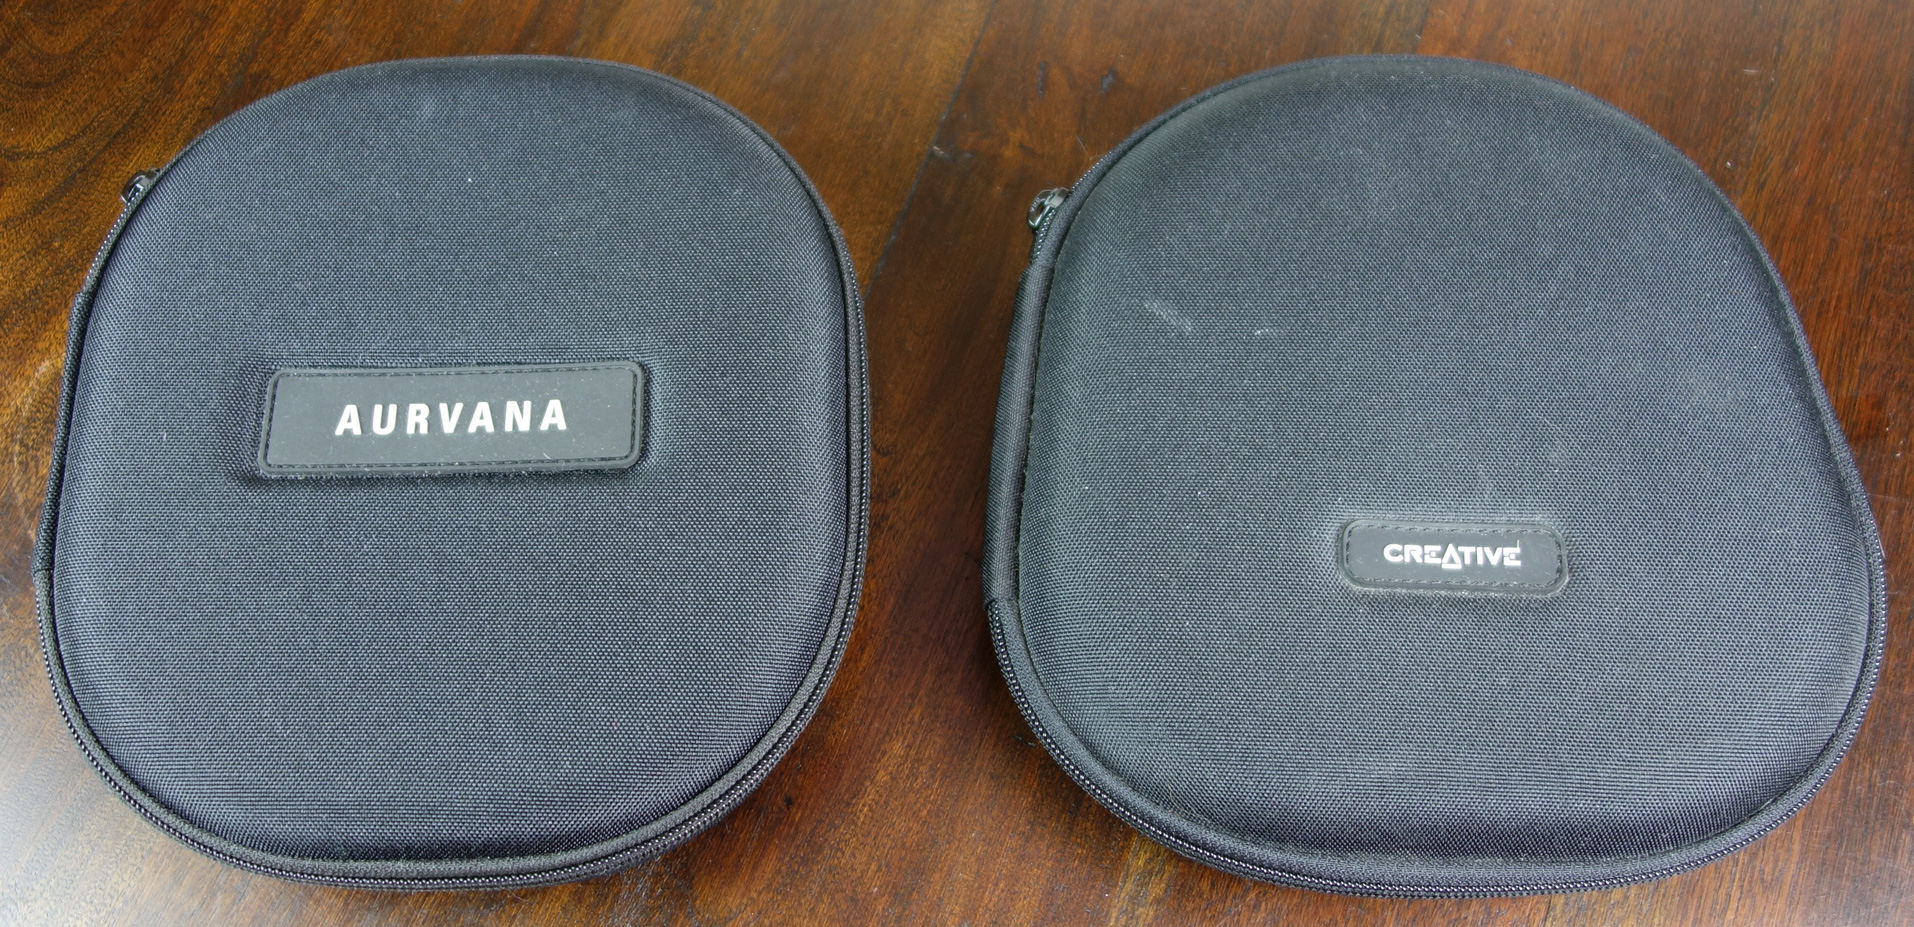 Creative Aurvana ANC X-Fi cases